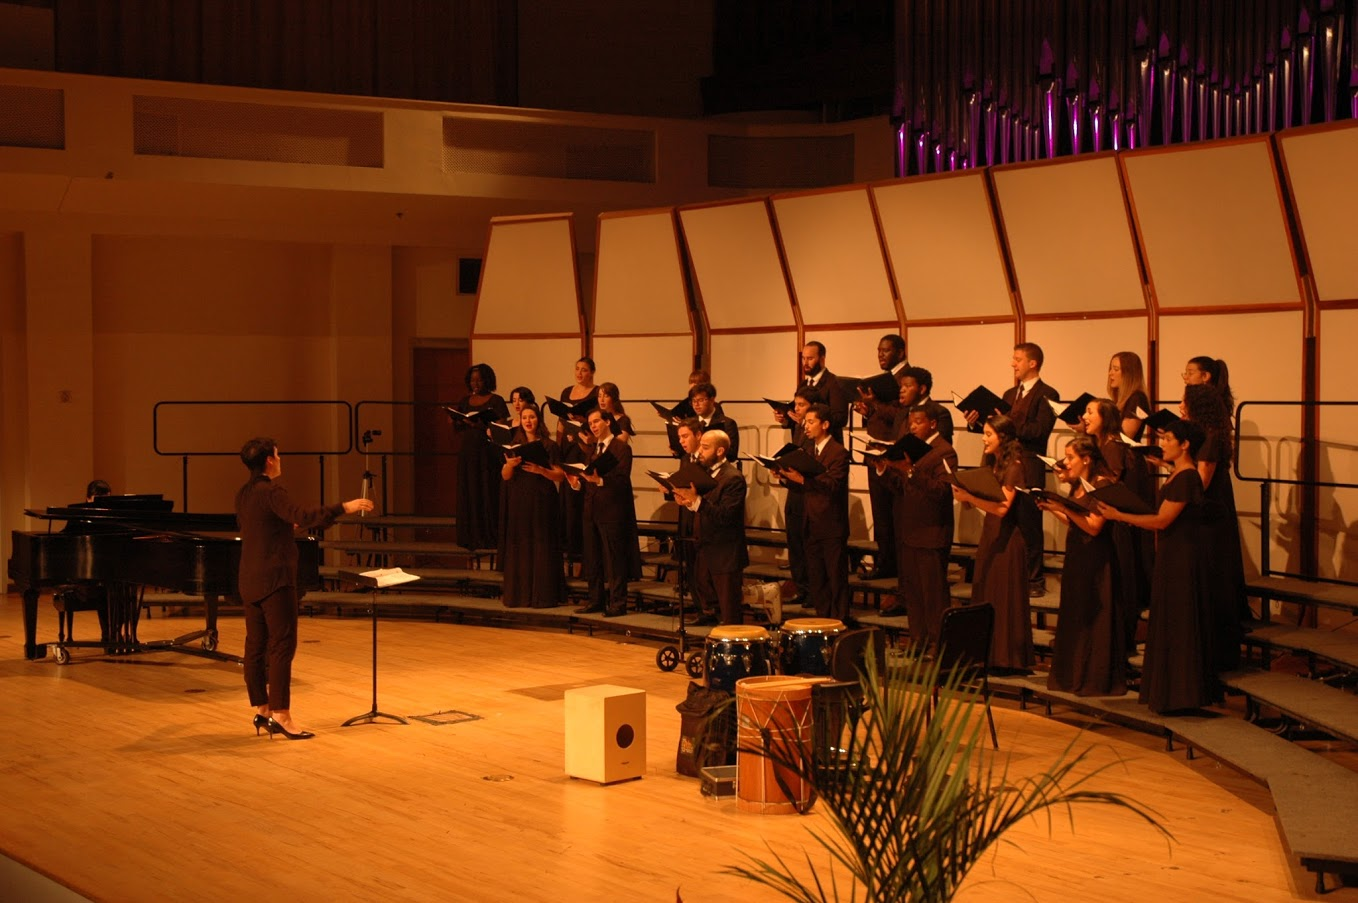 Choral Conductor Kathryn Longo and one of her choir classes during a concert